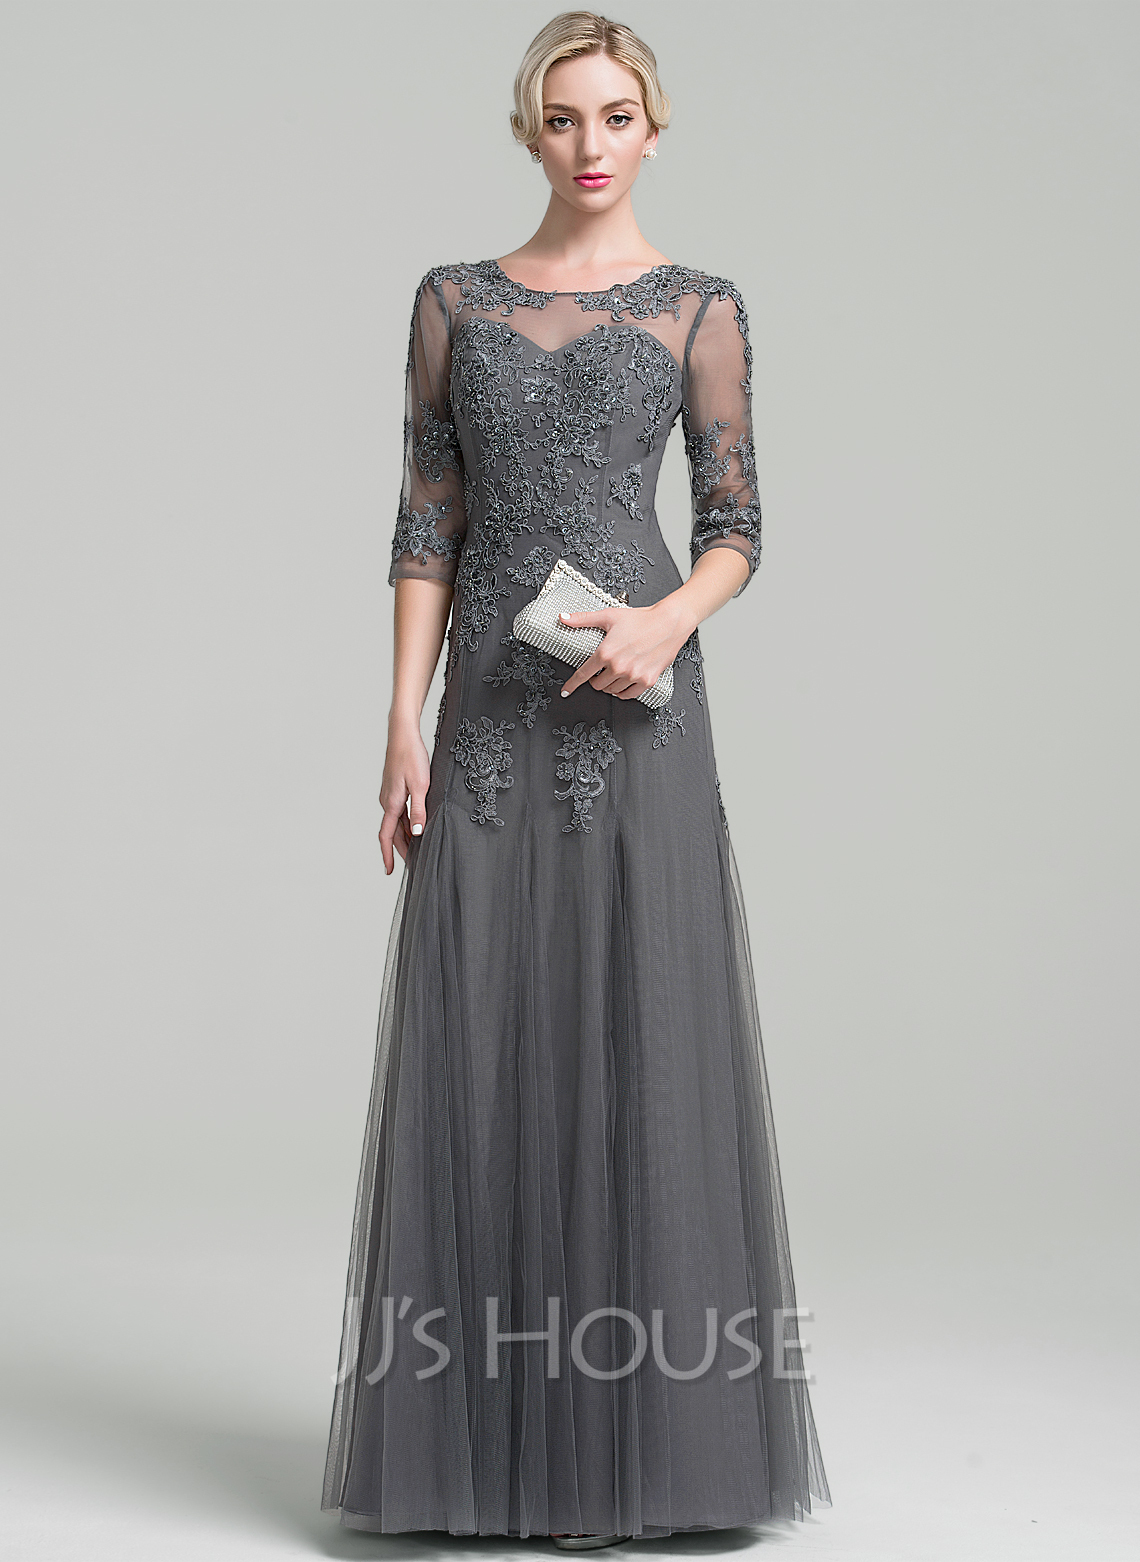 e3b2abed294 A-Line Princess Scoop Neck Floor-Length Tulle Mother of the Bride Dress.  Loading zoom